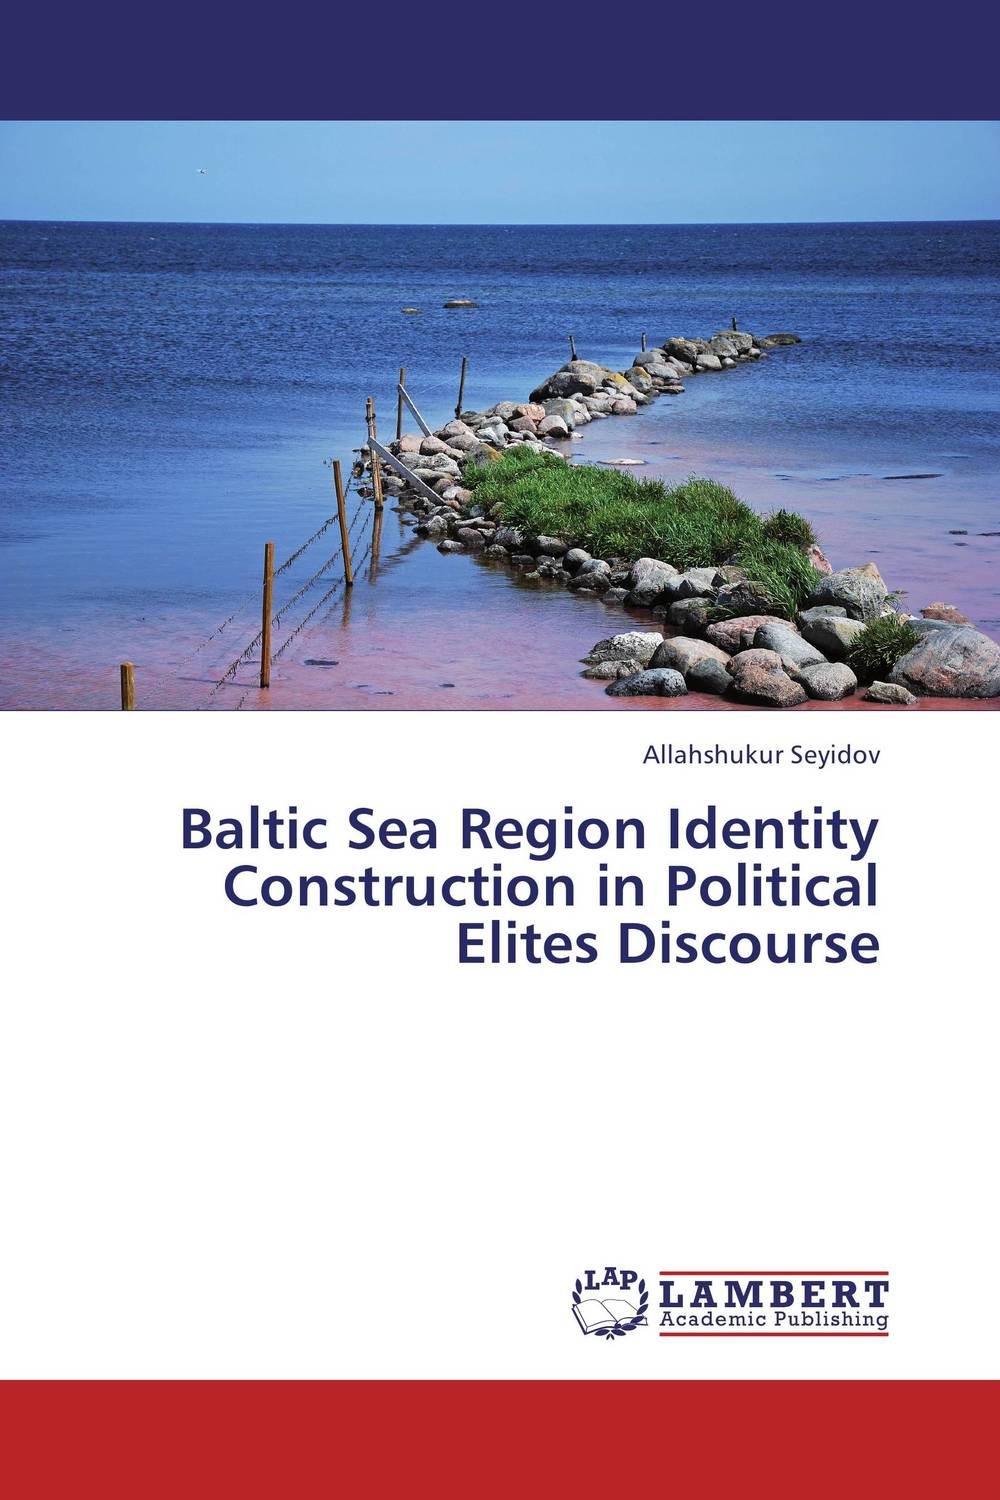 Фото Baltic Sea Region Identity Construction in Political Elites Discourse cervical cancer in amhara region in ethiopia